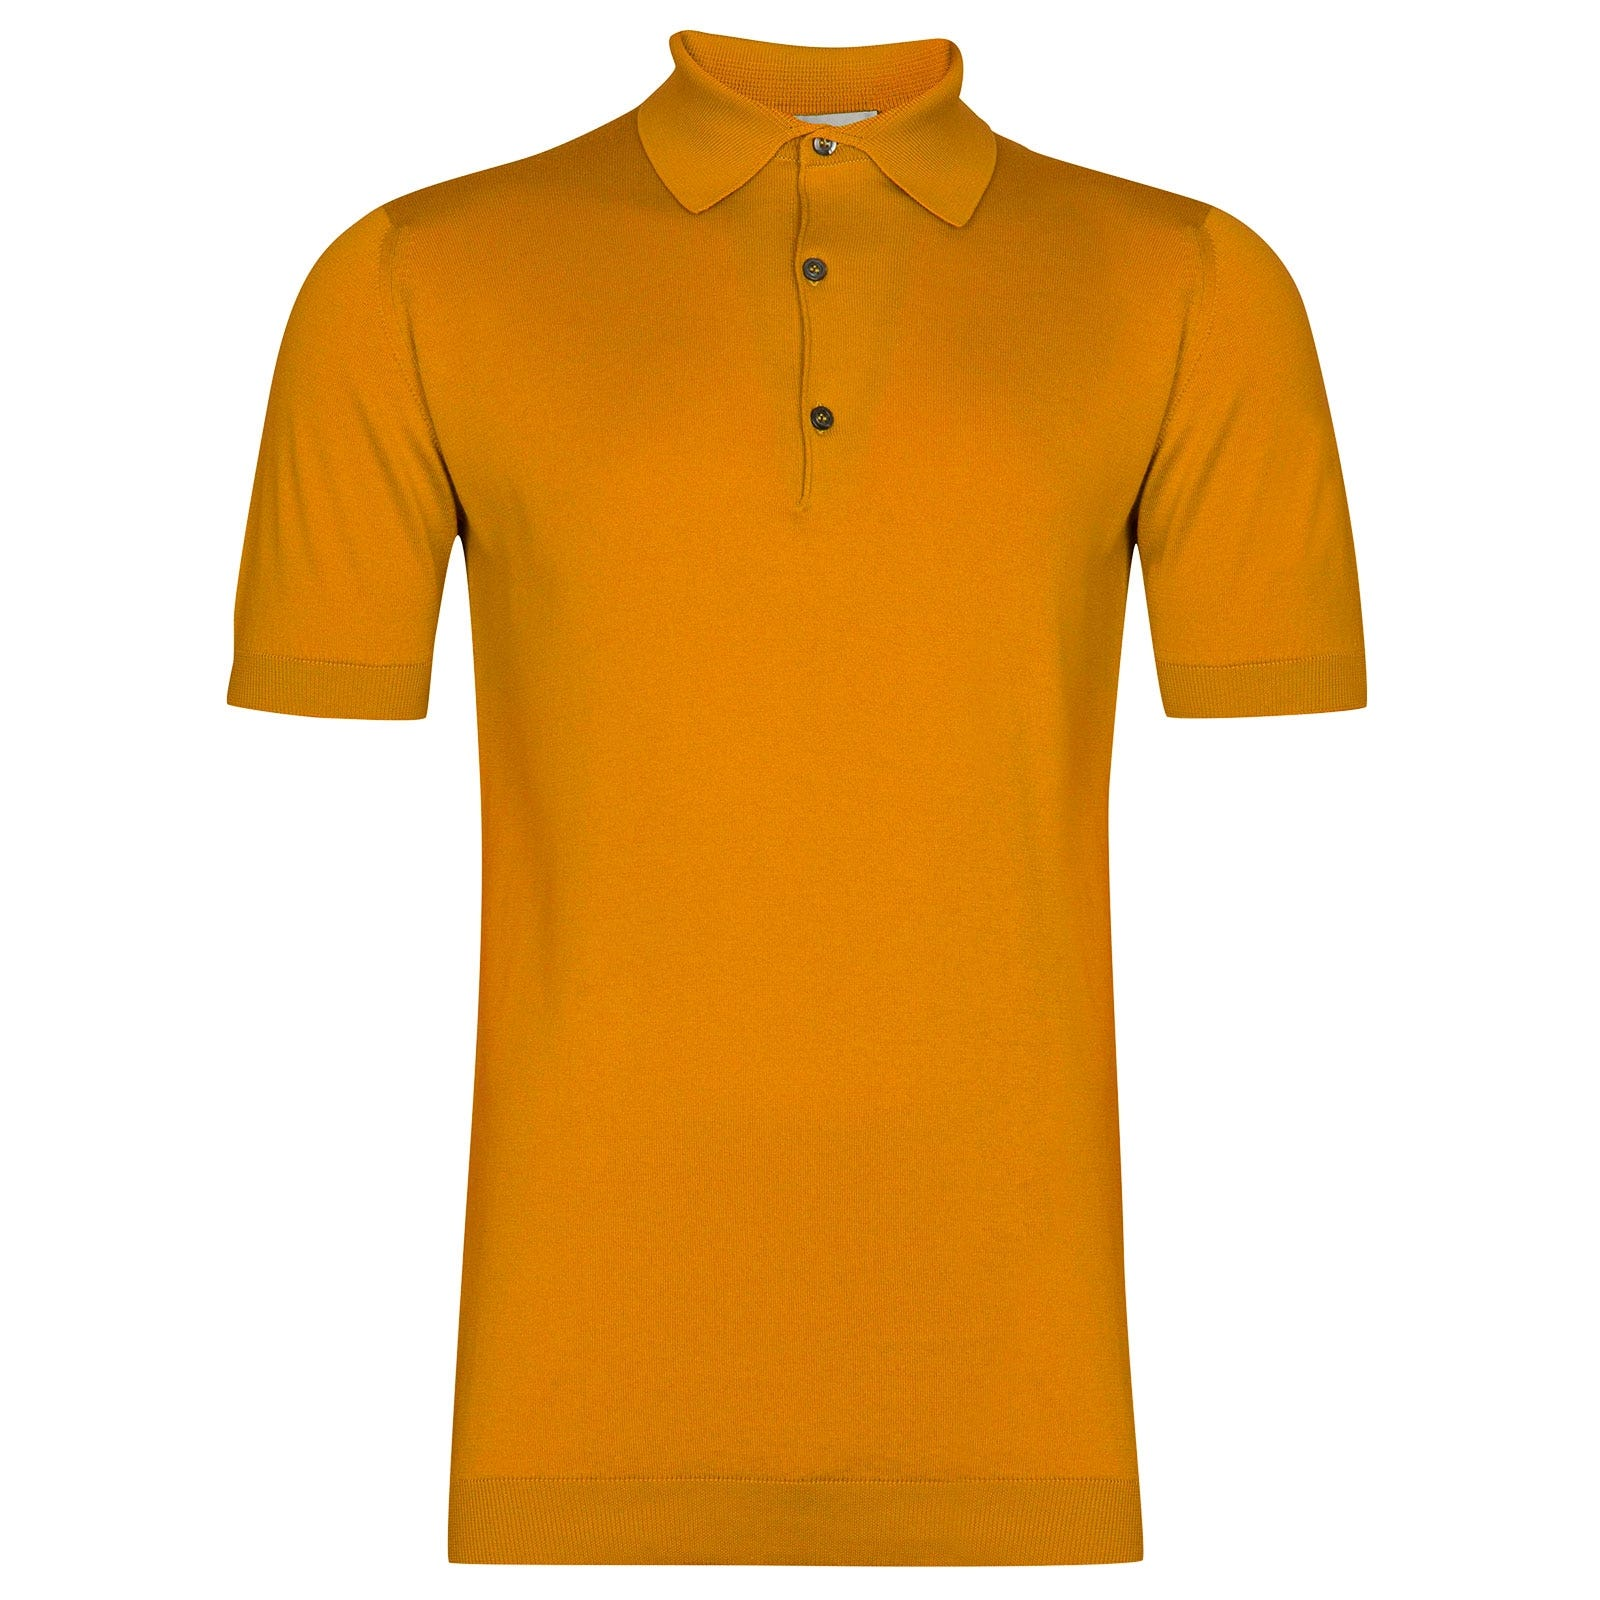 John Smedley Adrian Sea Island Cotton Shirt in Topstitch Orange-L